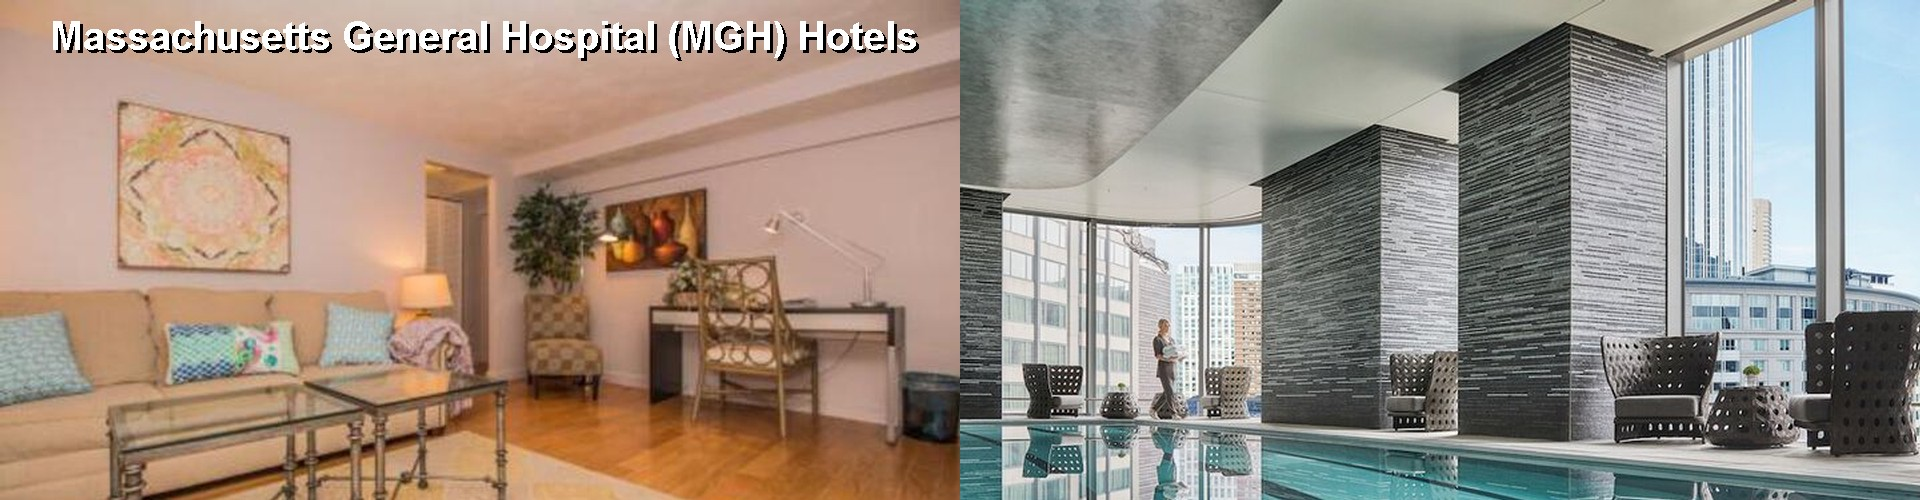 52 Hotels Near Massachusetts General Hospital MGH in Boston MA